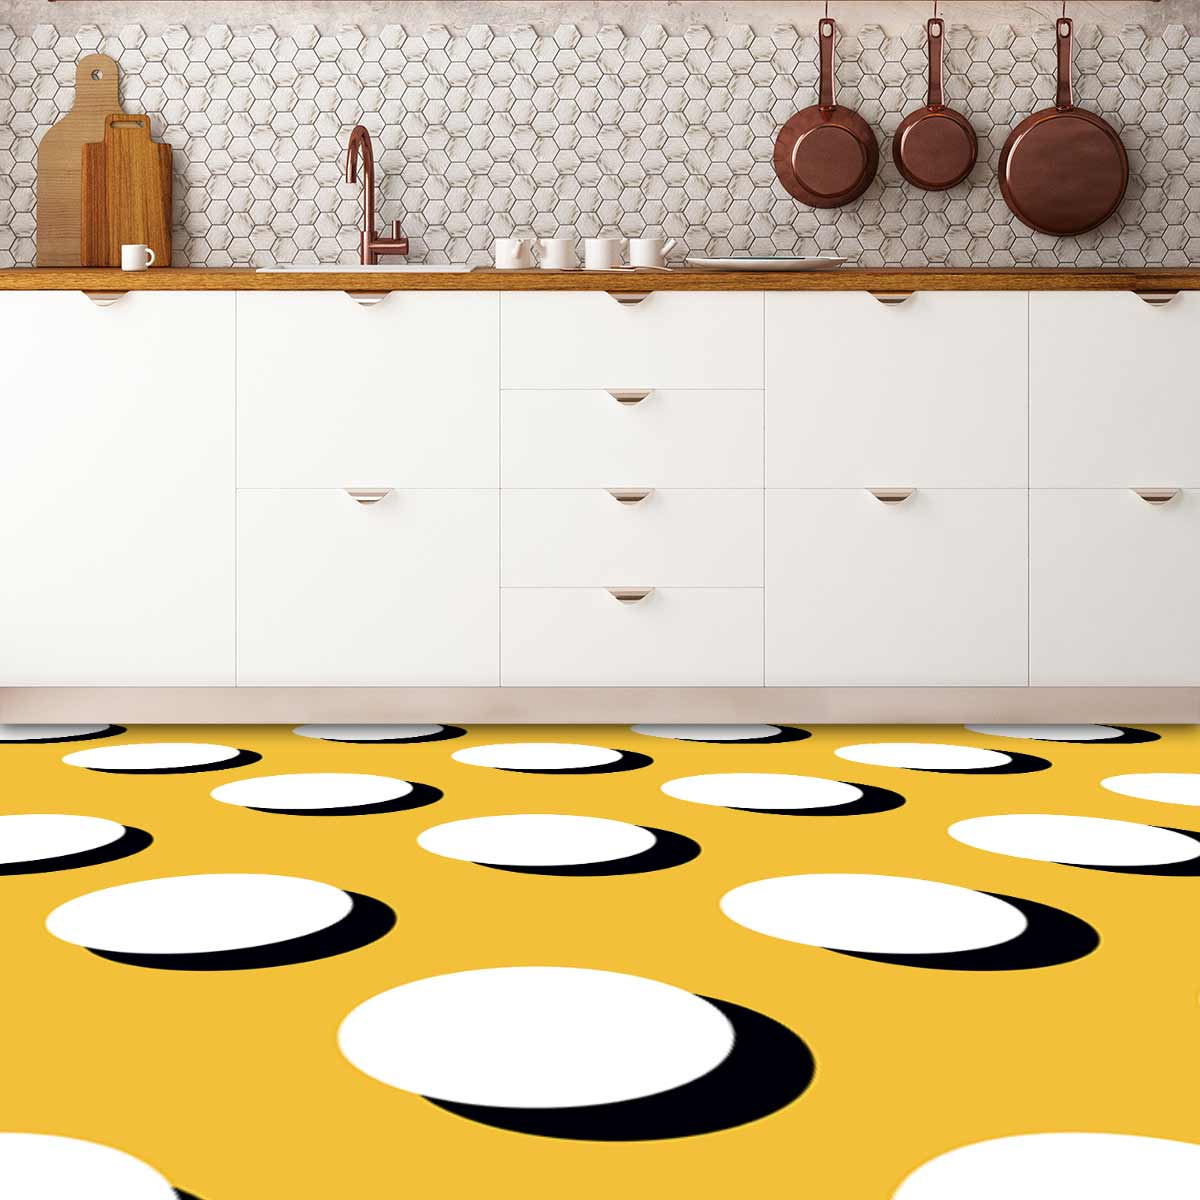 Image showing a kitchen with Polka Dot flooring used in a blog post about Polka Dot floor tiles from forthefloorandmore.com